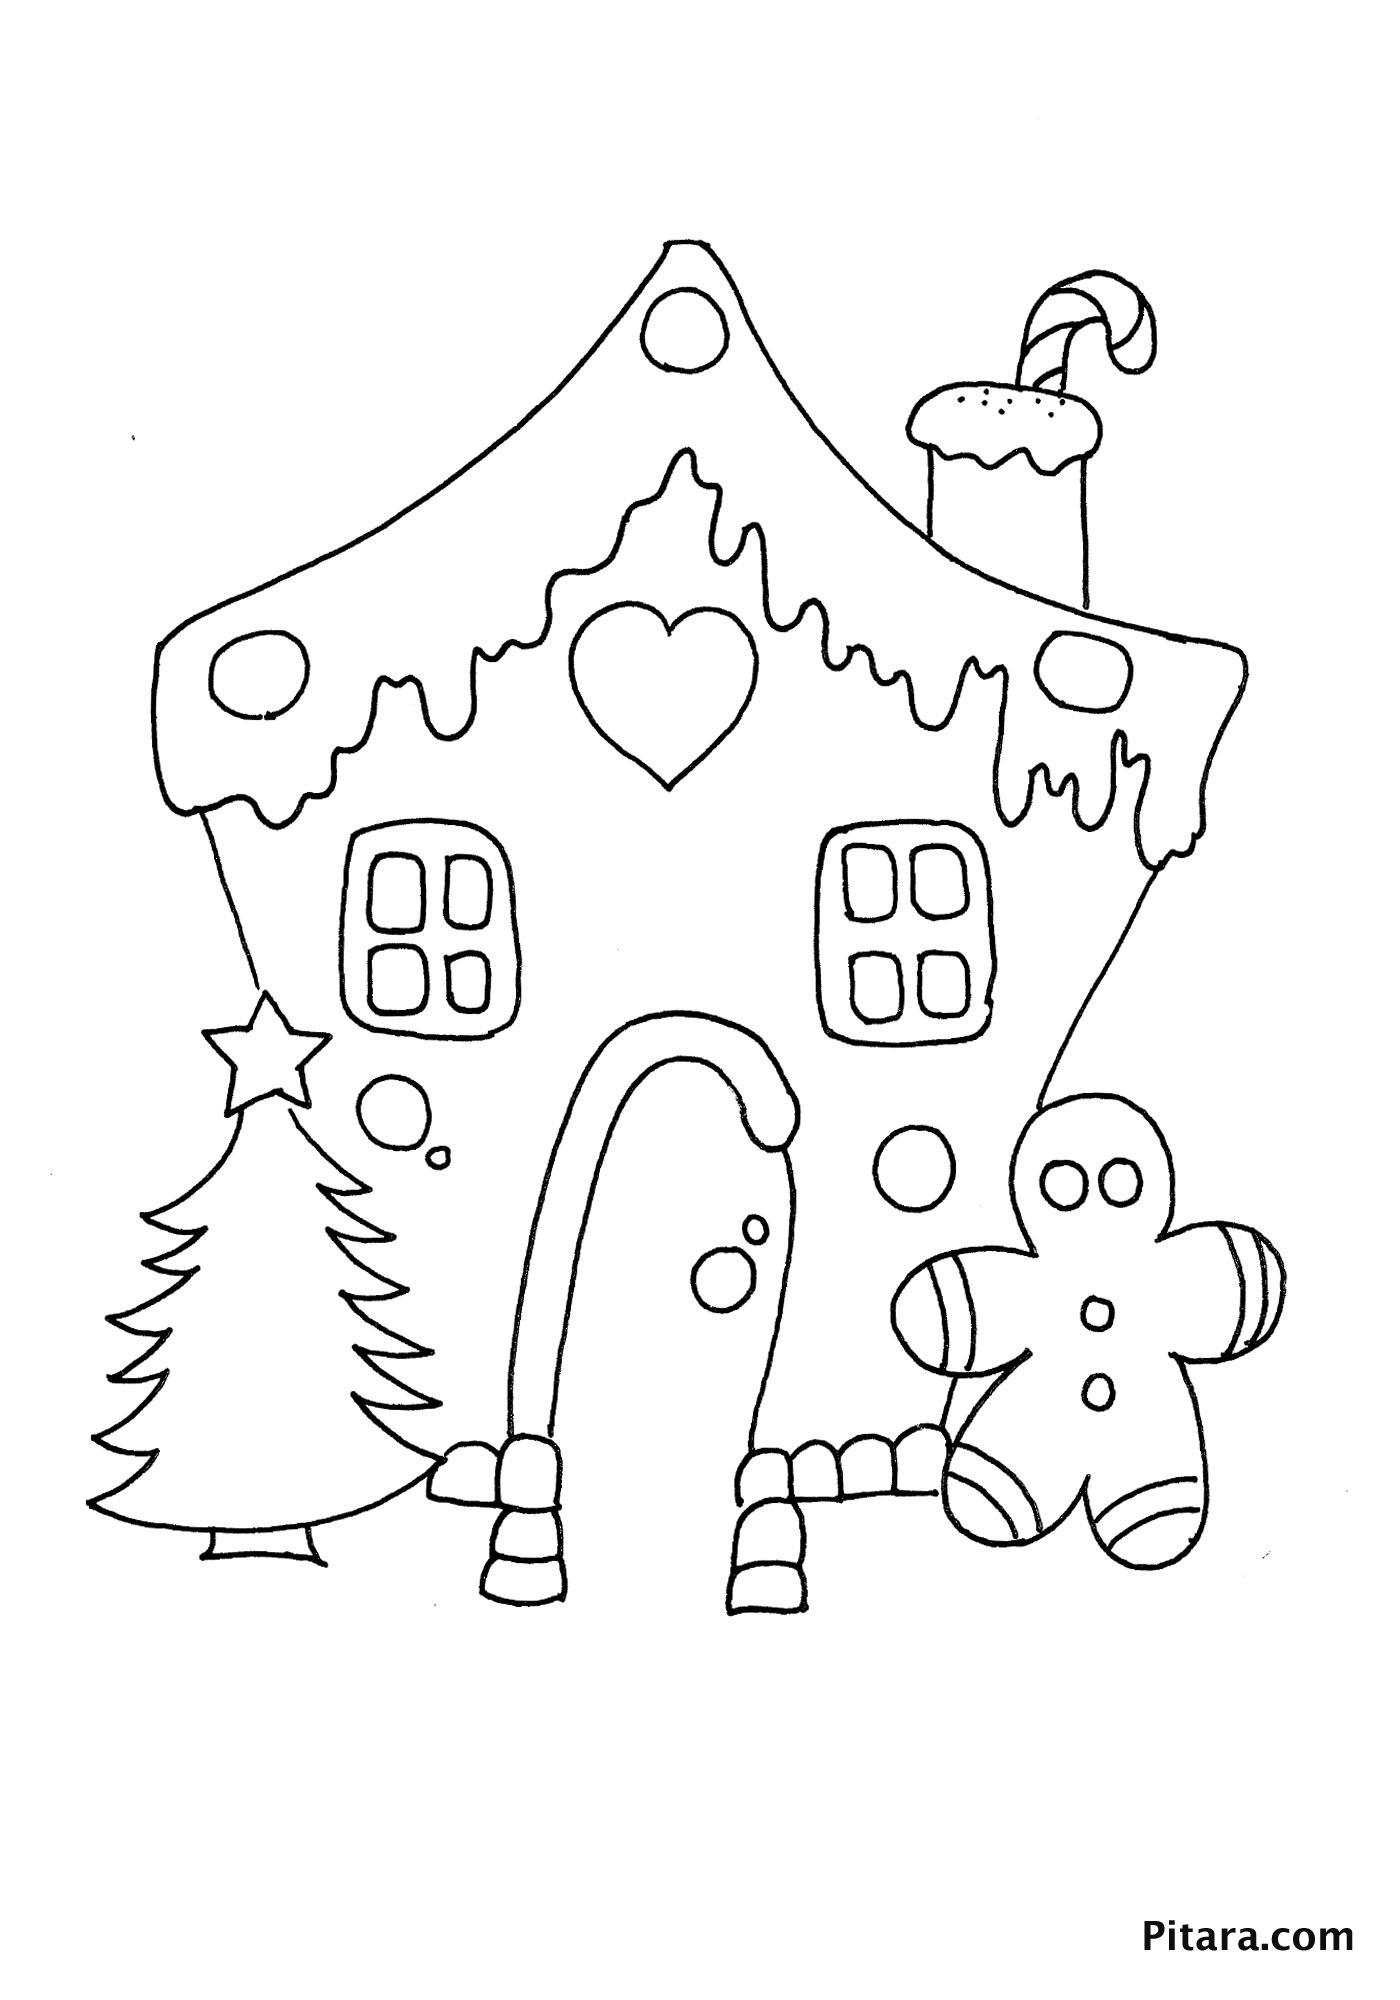 Christmas decorations – Coloring page